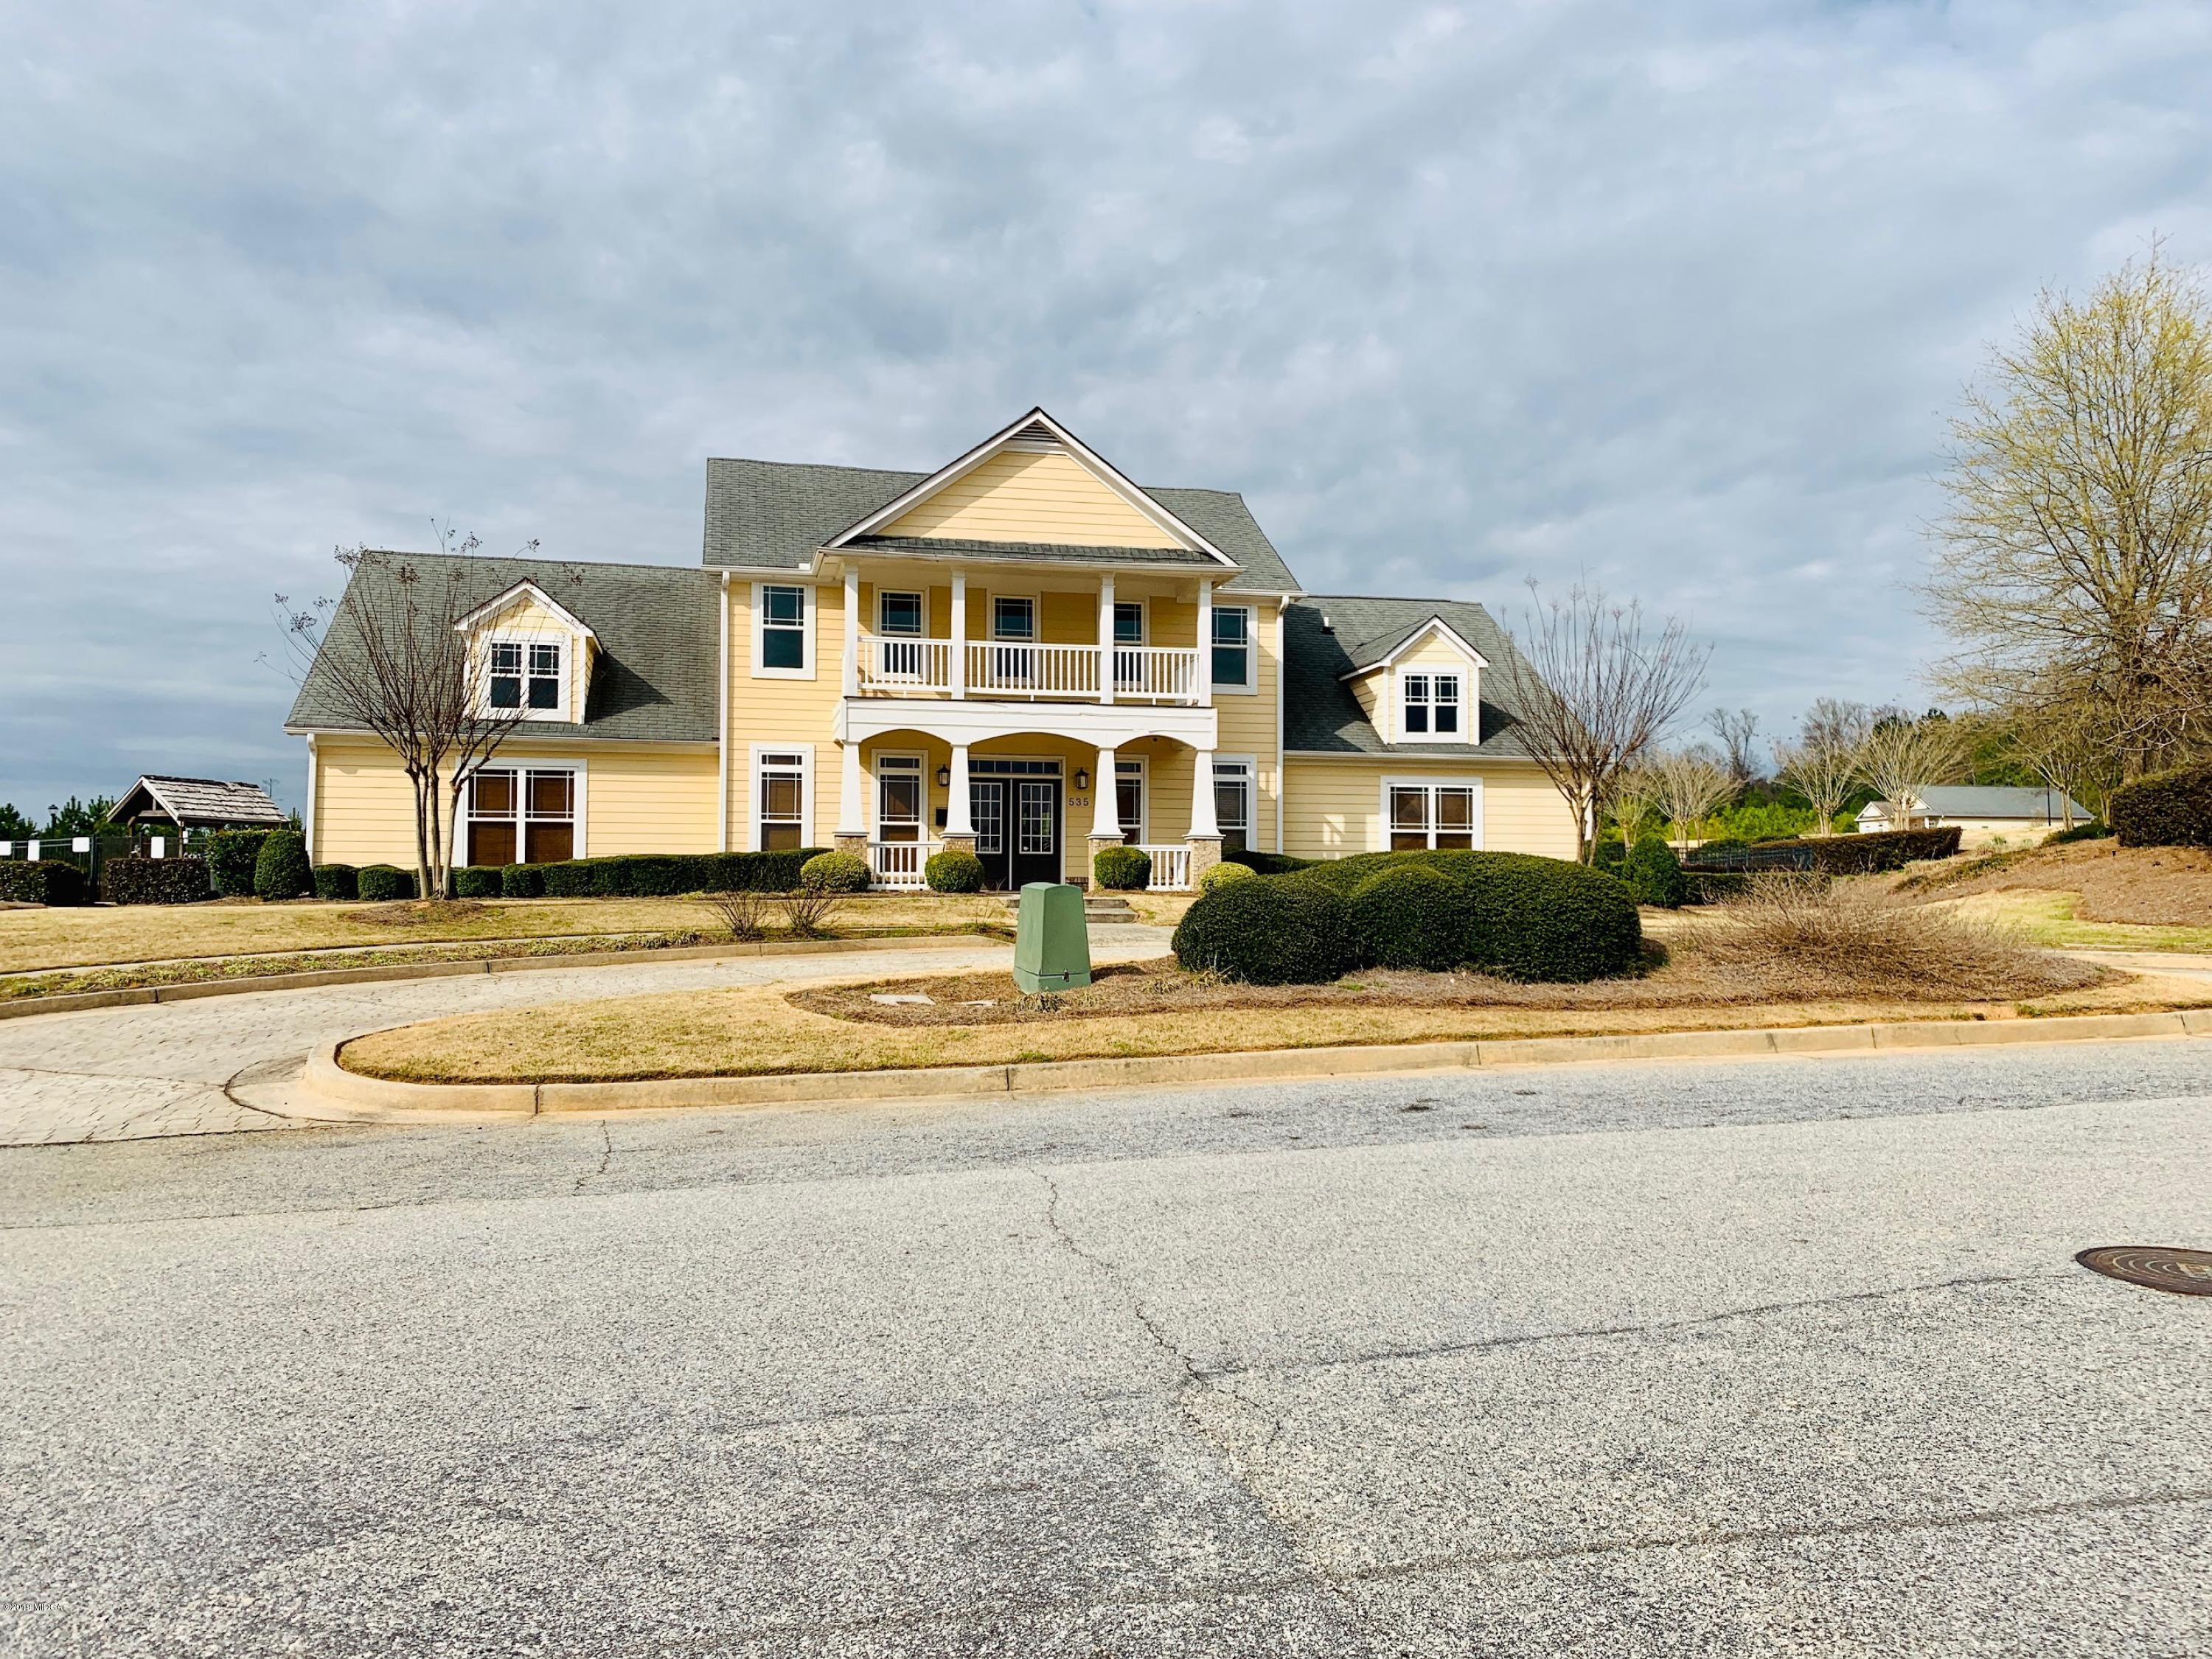 610 Ivy Brook Way, Macon, GA 31210